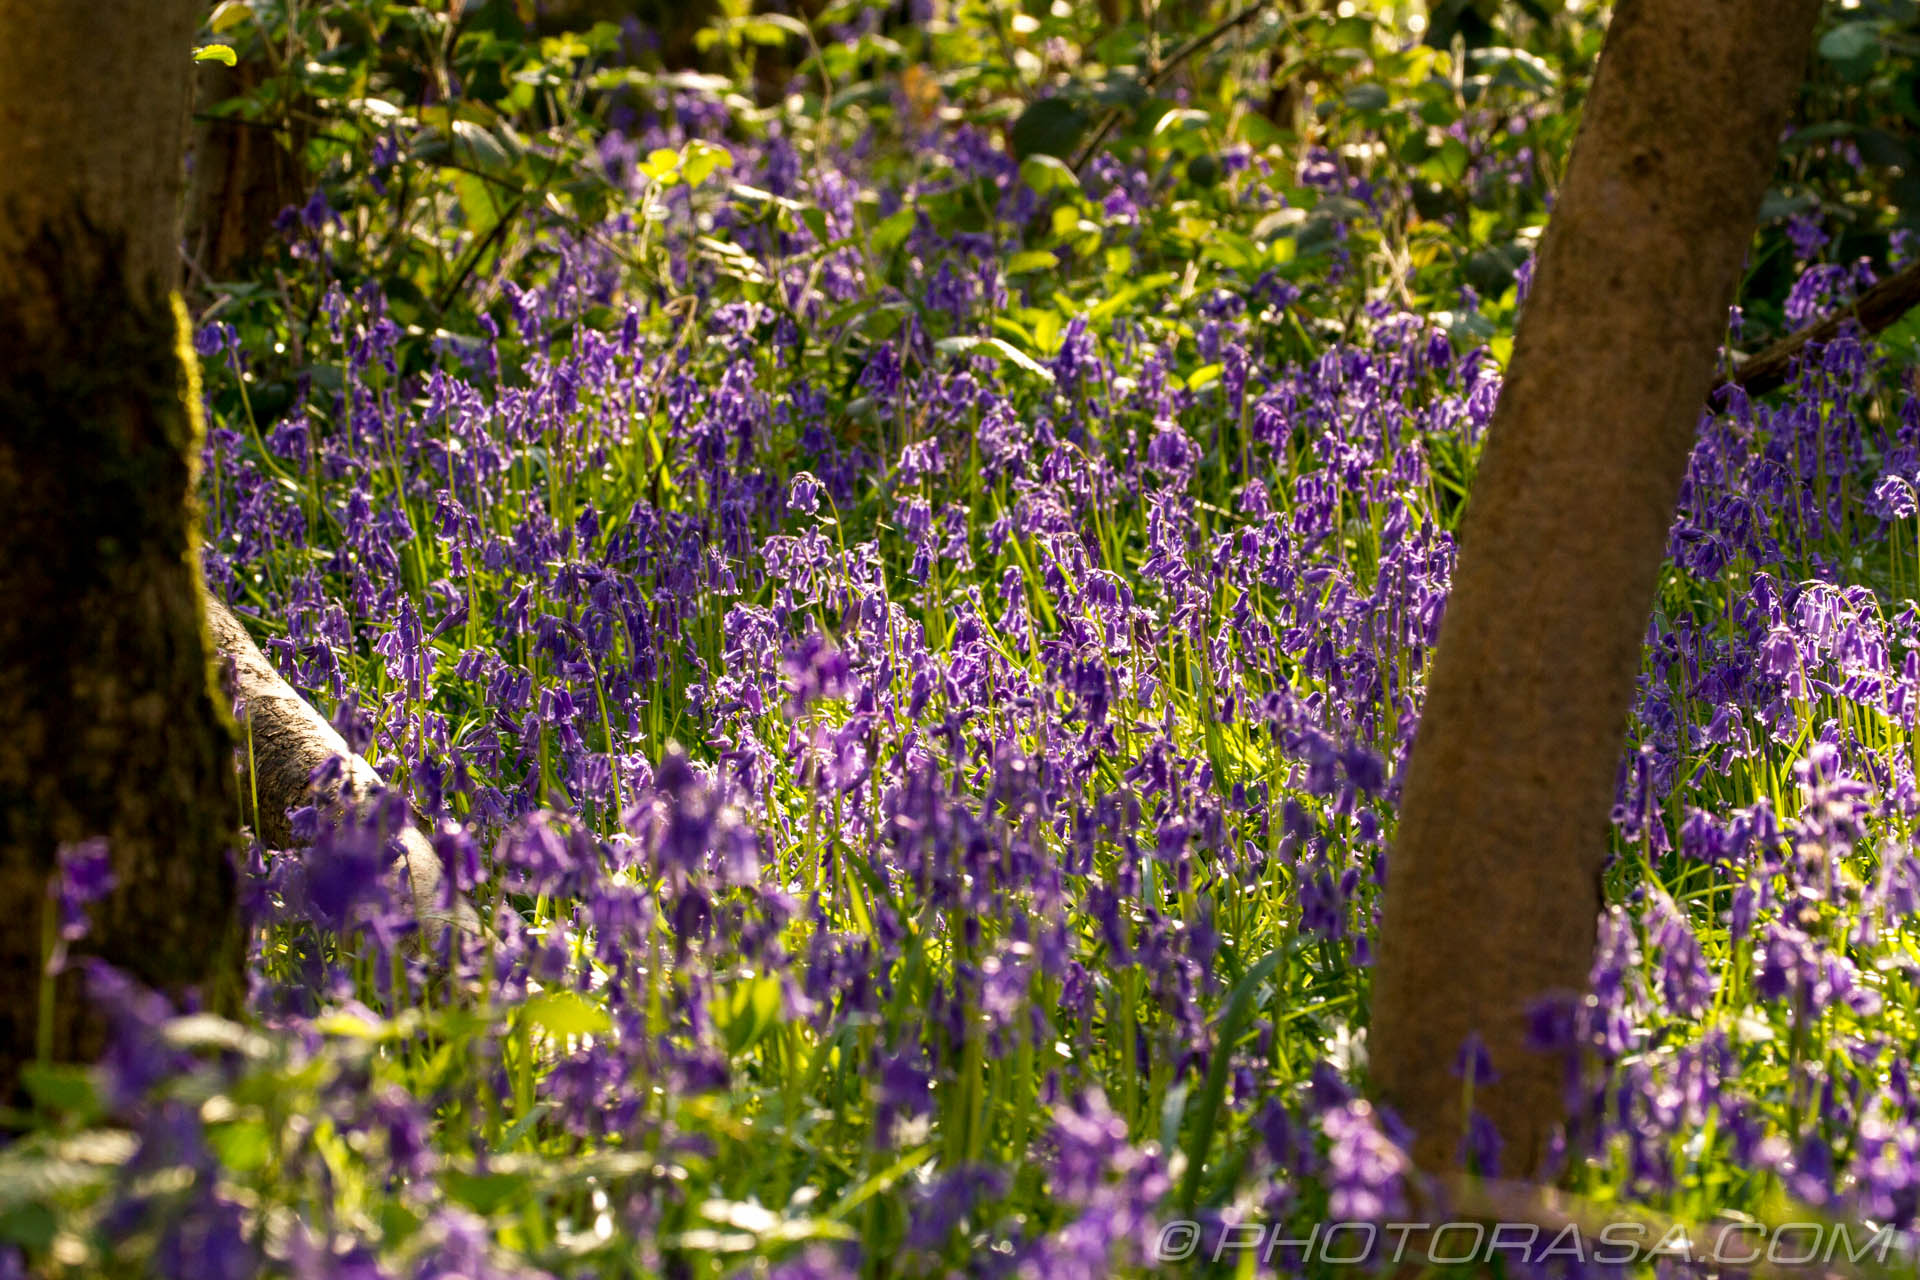 http://photorasa.com/bluebells-woods/bluebells-in-the-woods/